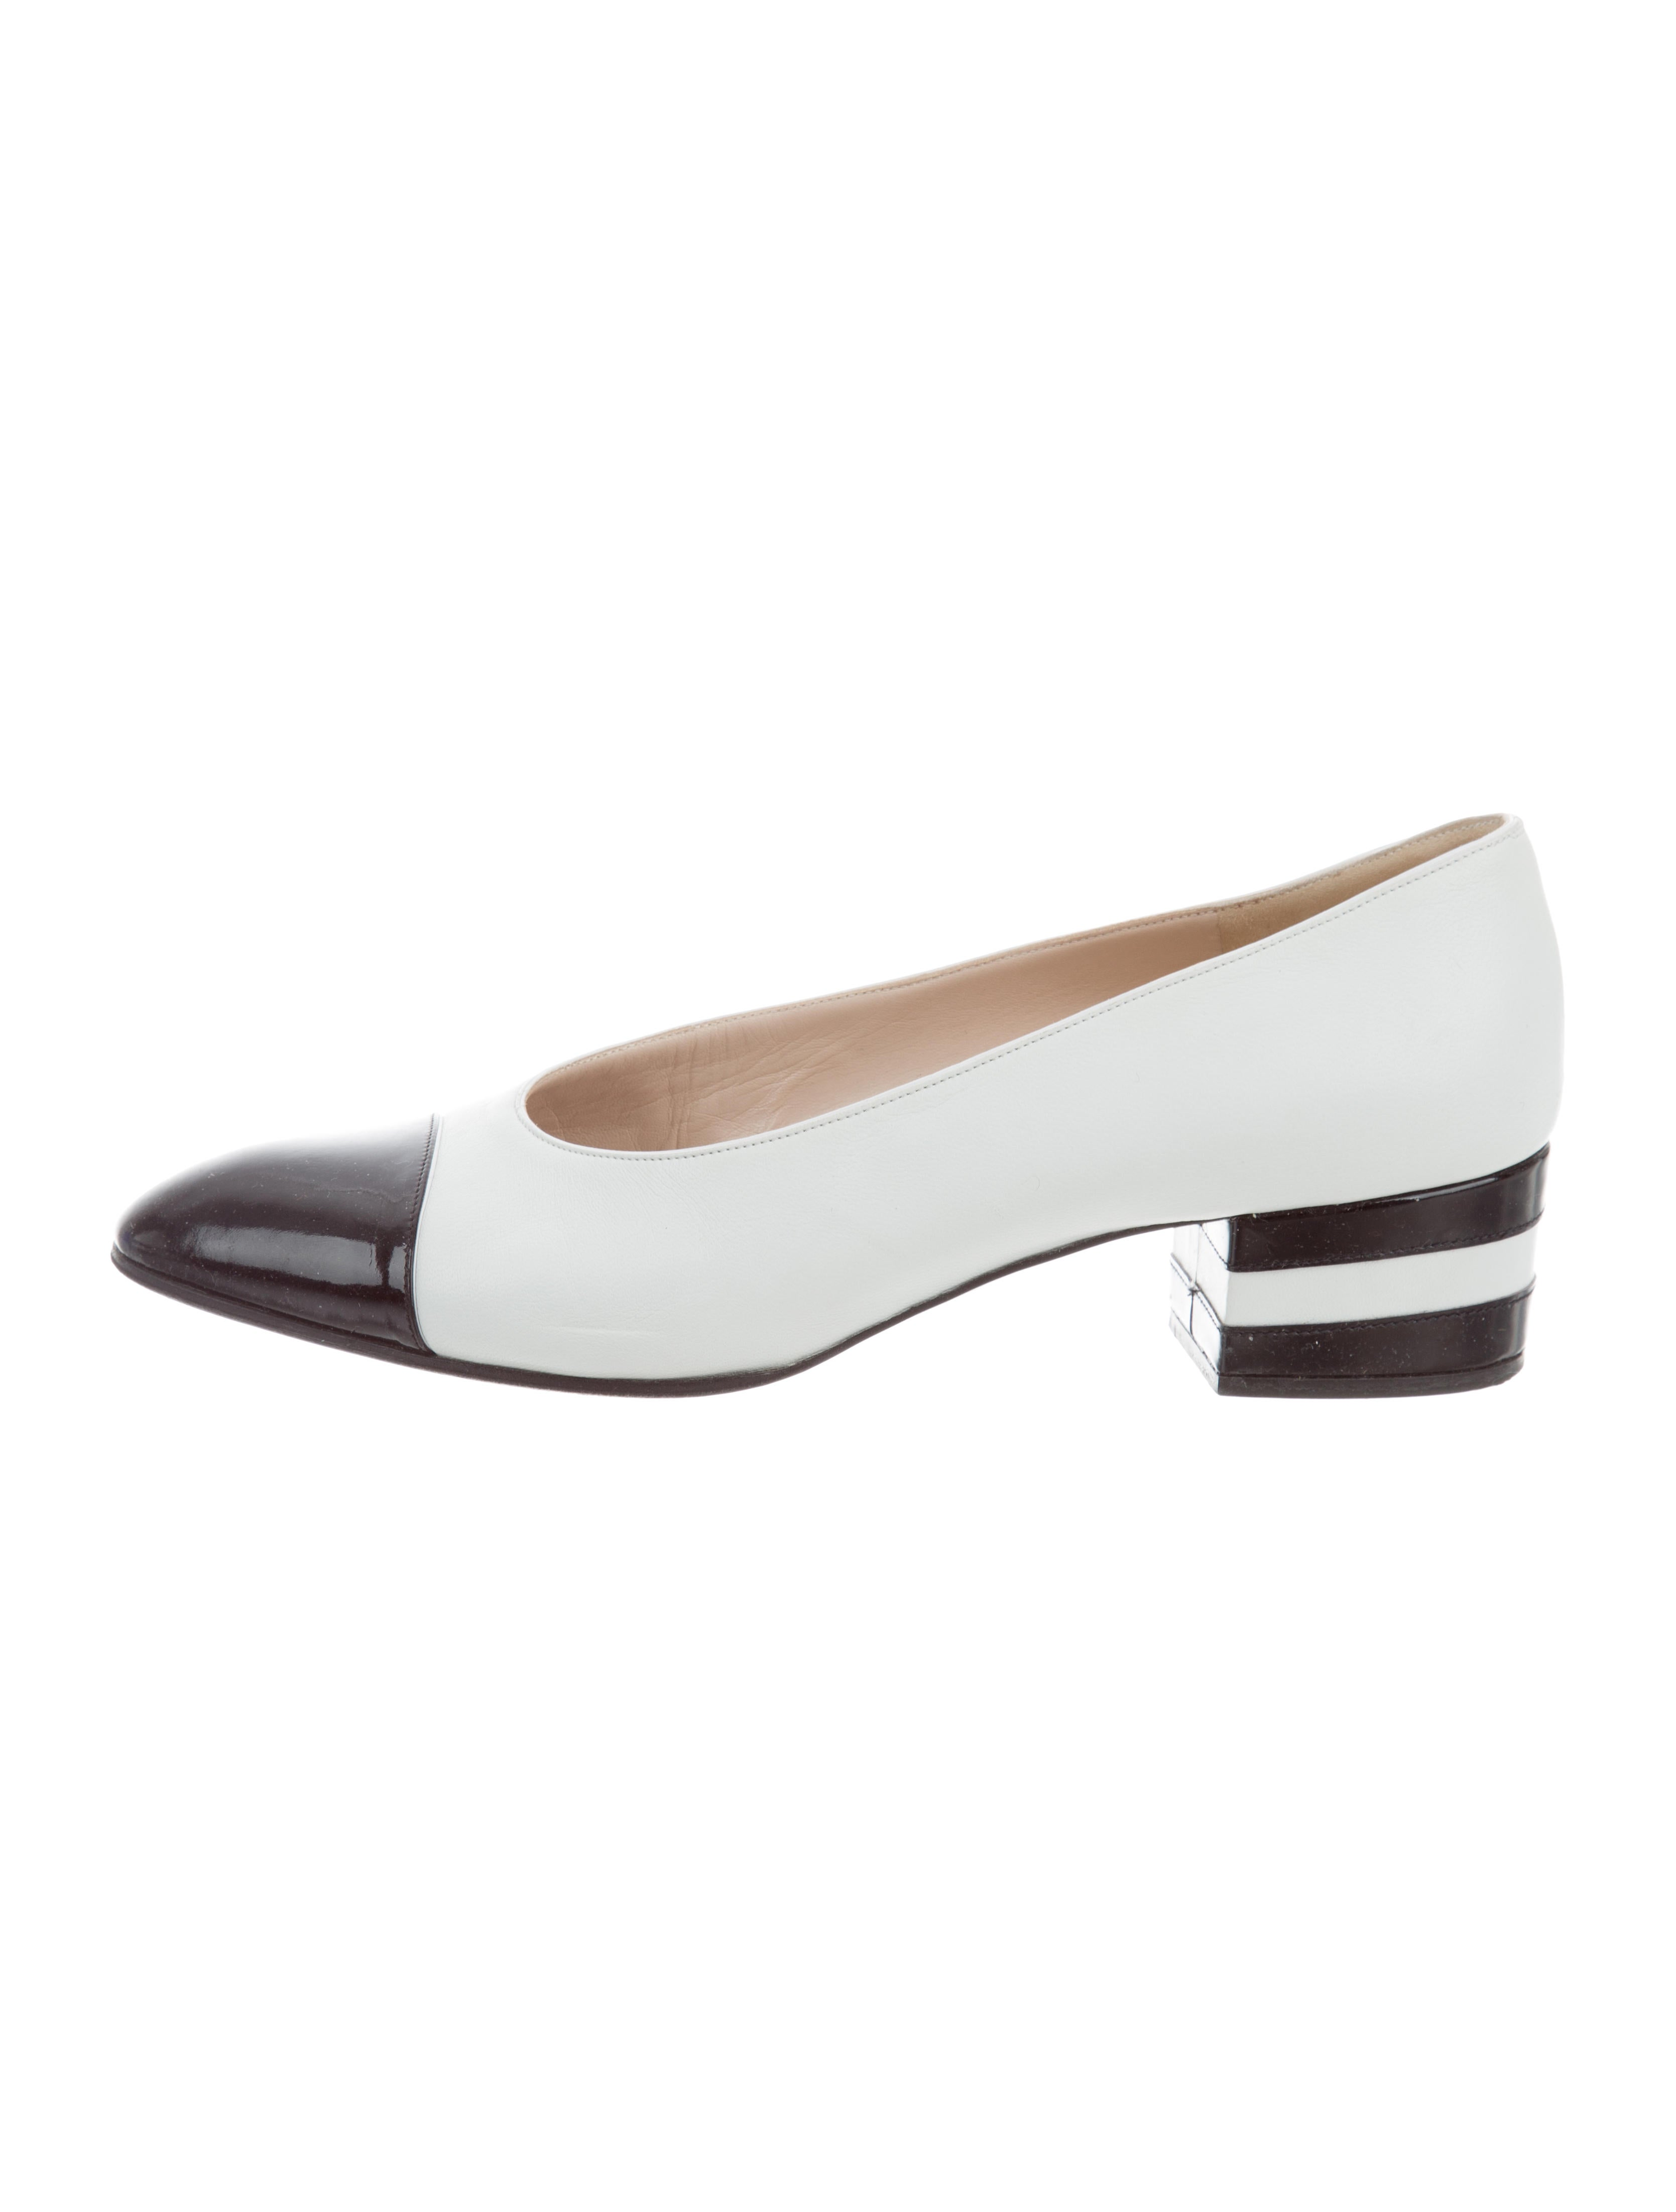 ed436263bc Chanel Leather Cap-Toe Pumps - Shoes - CHA276698   The RealReal